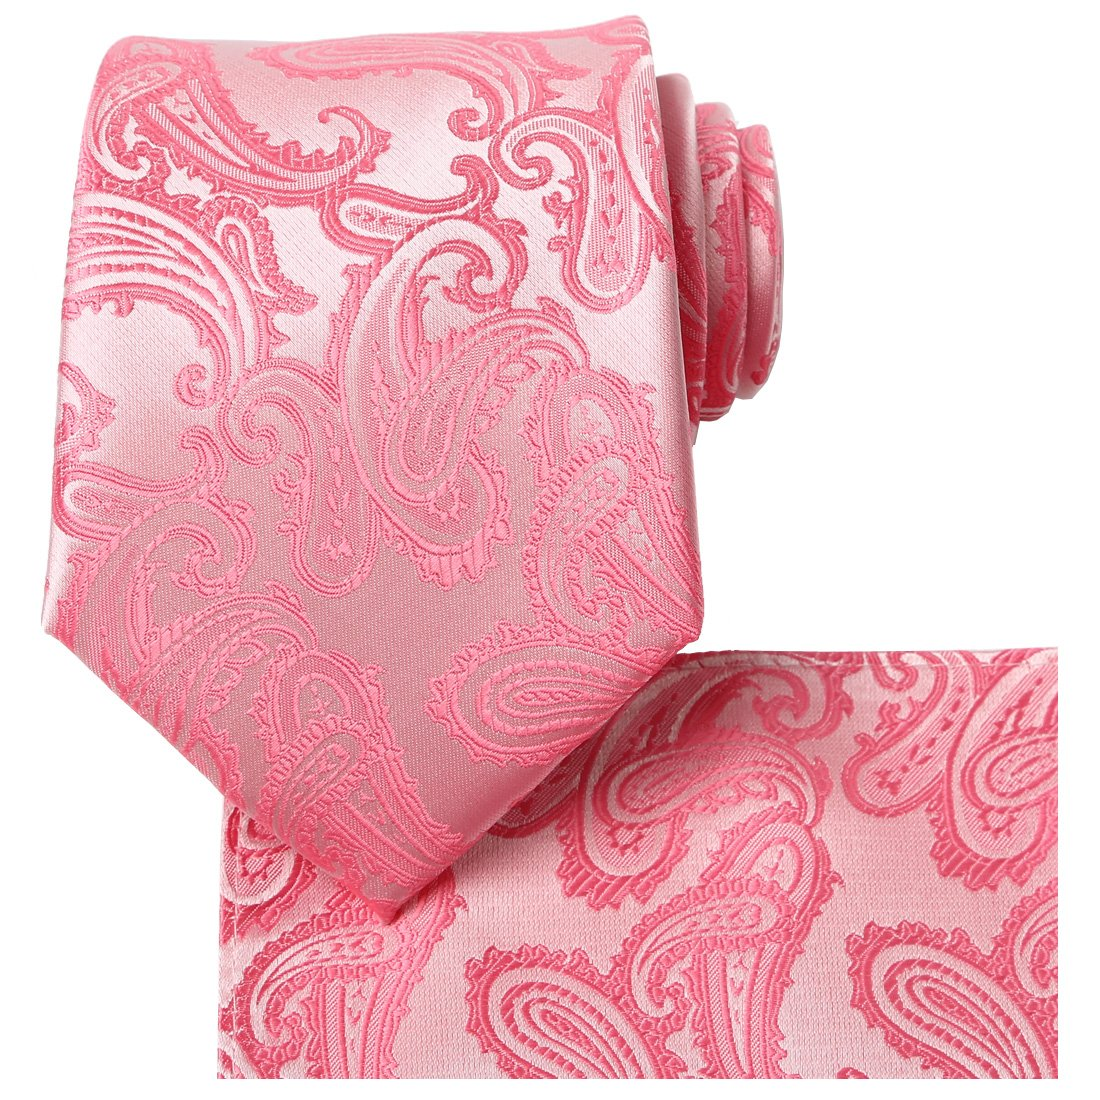 f65d4b16d0ee KissTies Mens Tie Set: Paisley Necktie + Pocket Square Hanky + Gift Box  product image